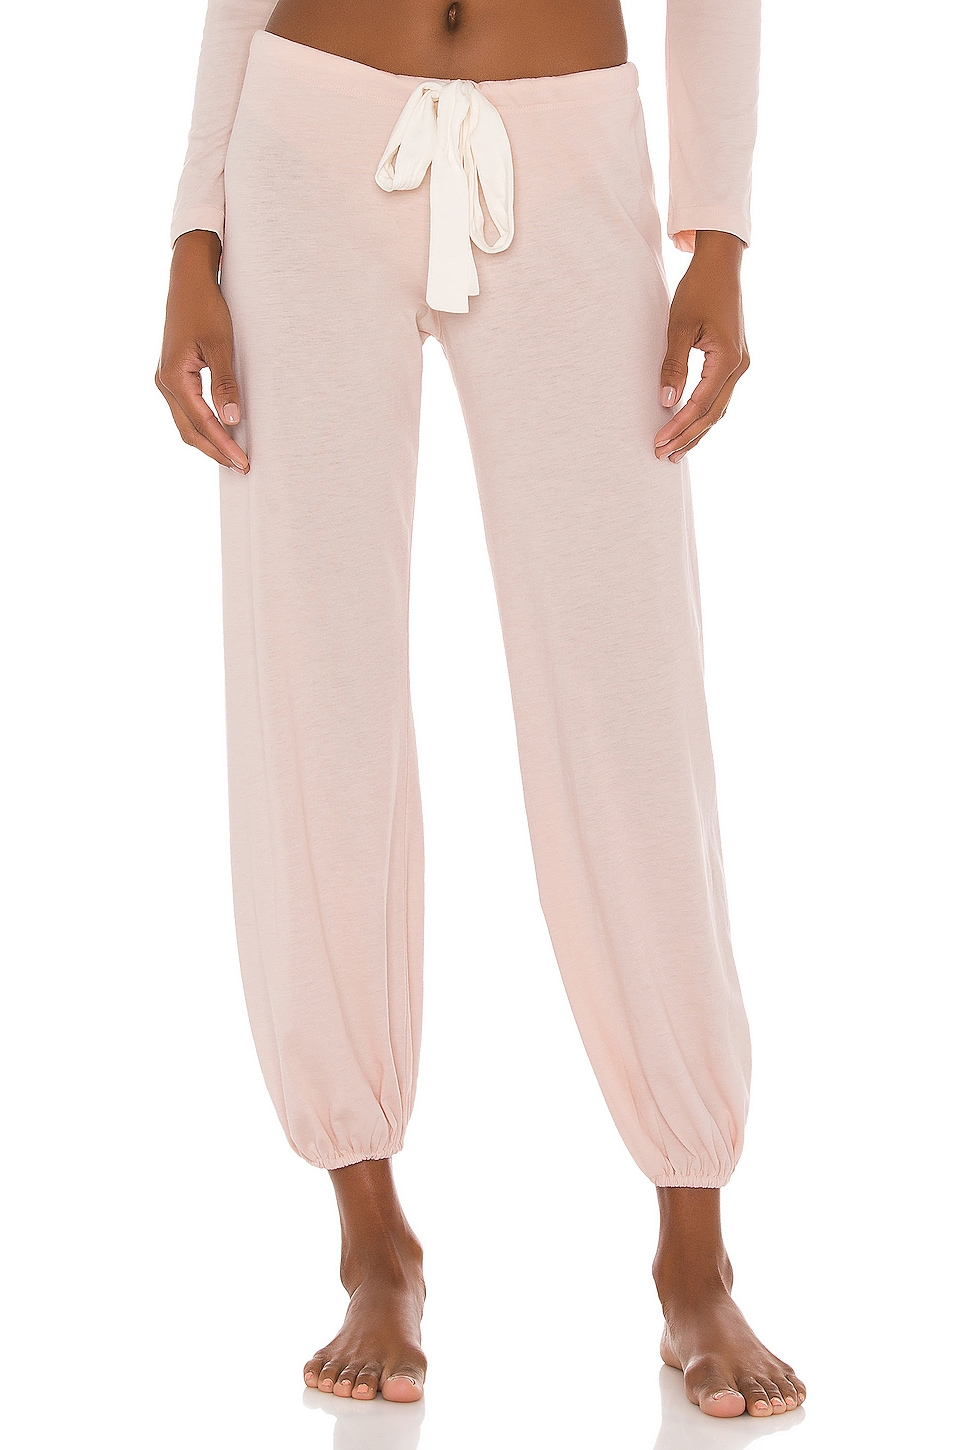 eberjey Heather Cropped Pant in Shell